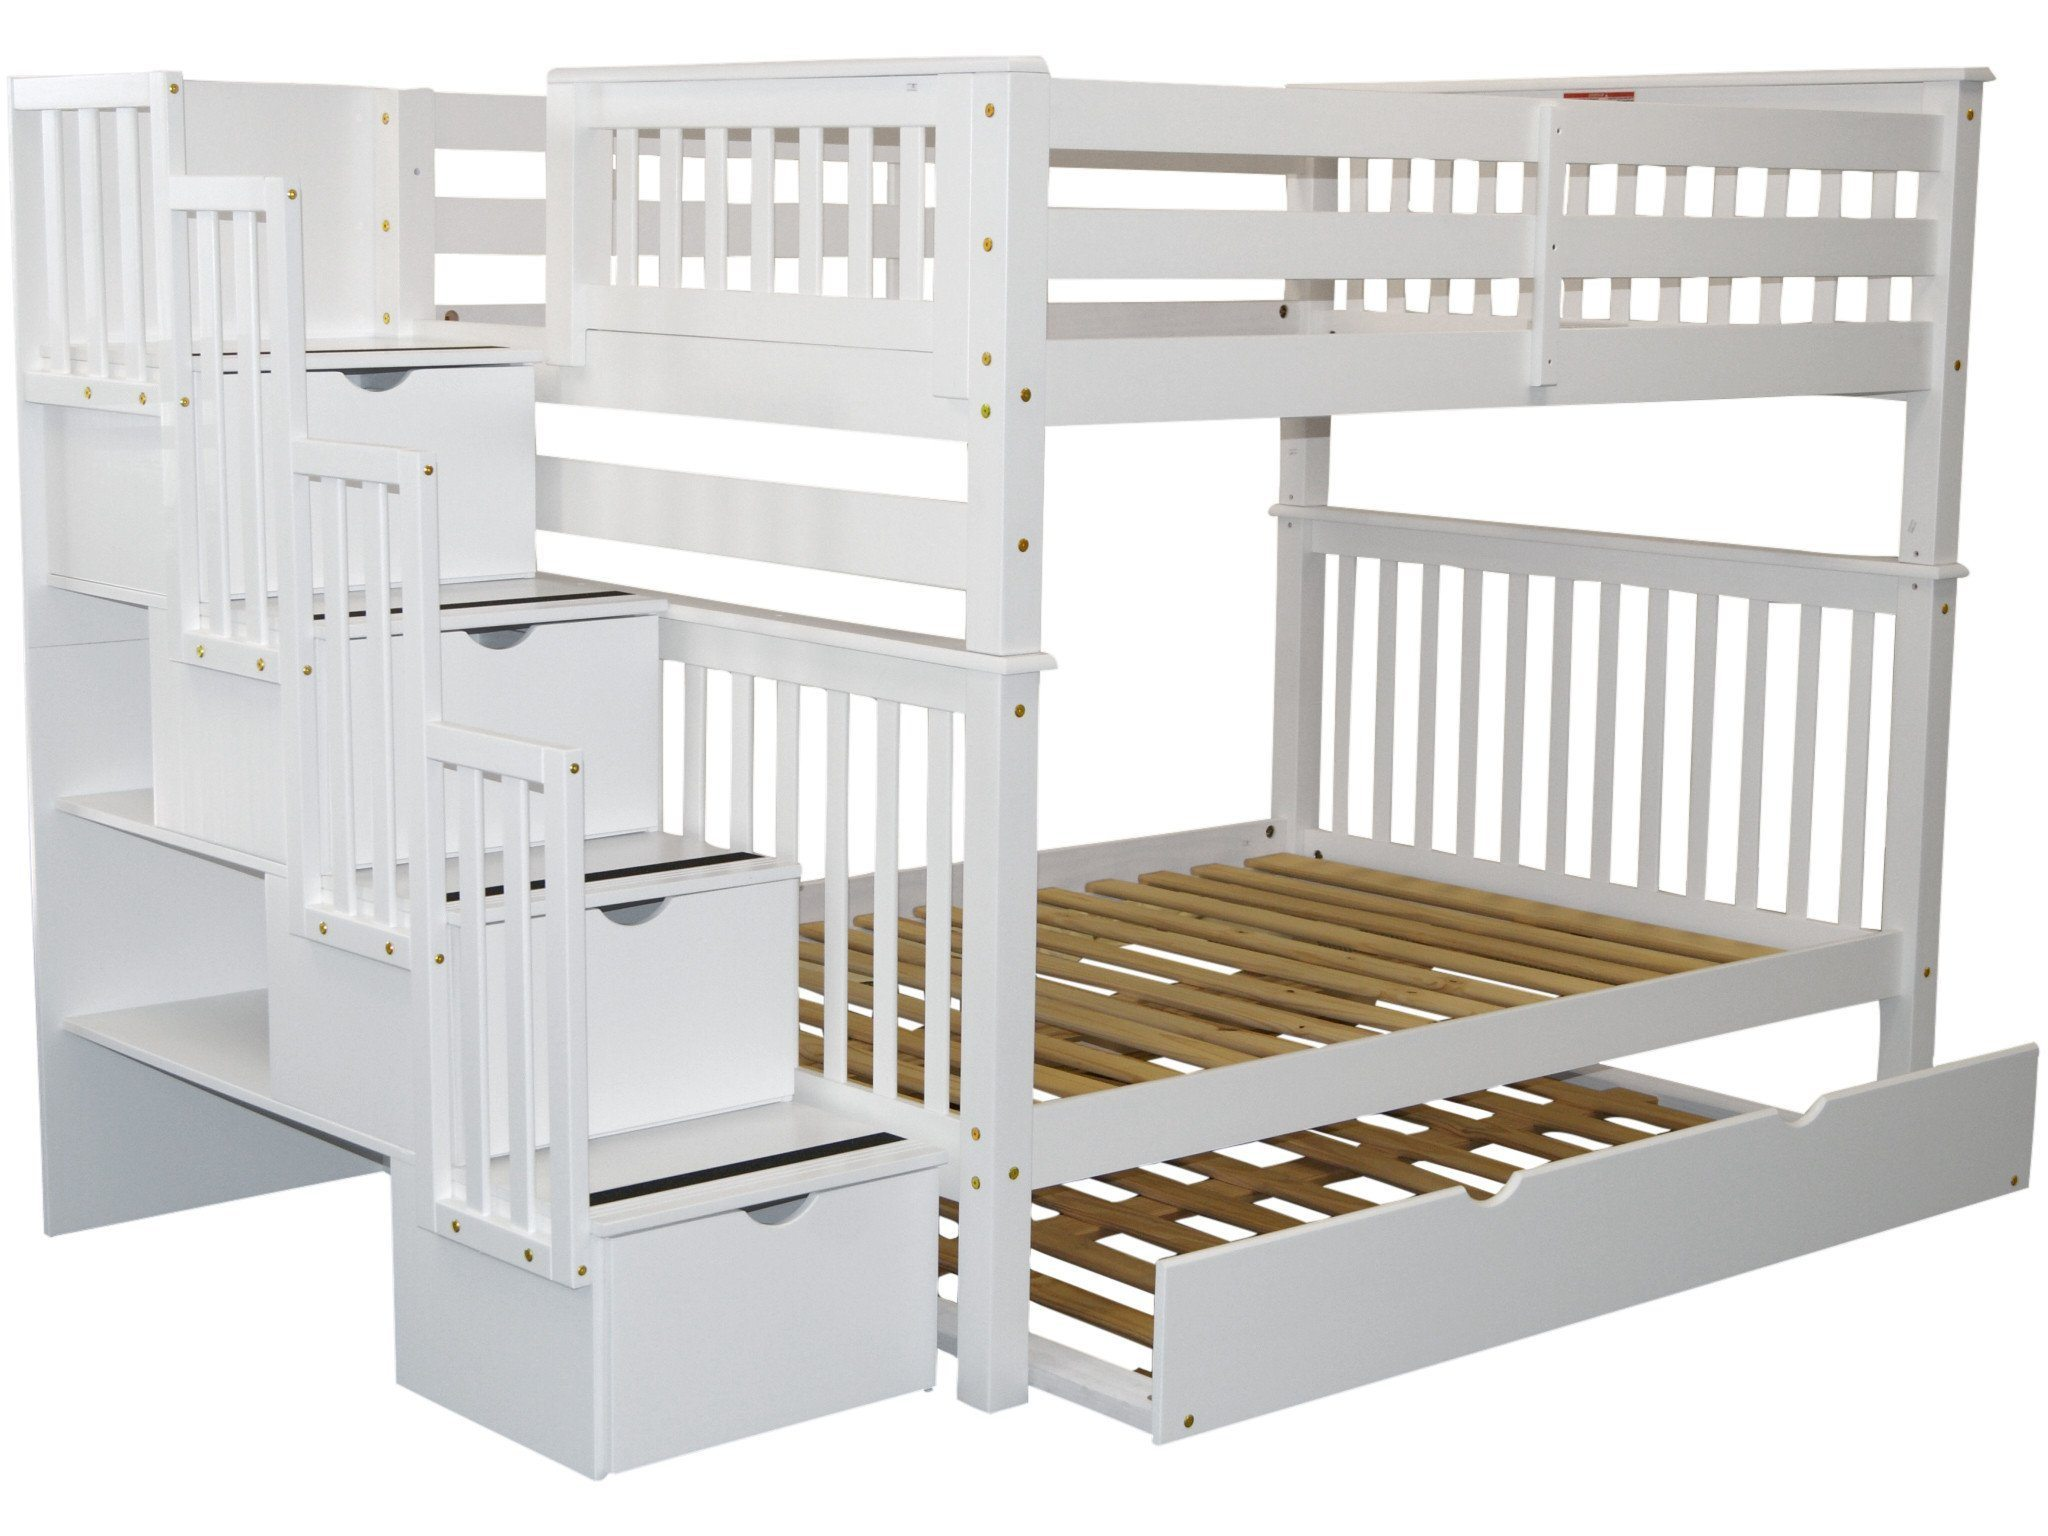 Bedz King Stairway Bunk Beds Full Over Full With 4 Drawers In The Steps And A Full Trundle White Walmart Com Walmart Com